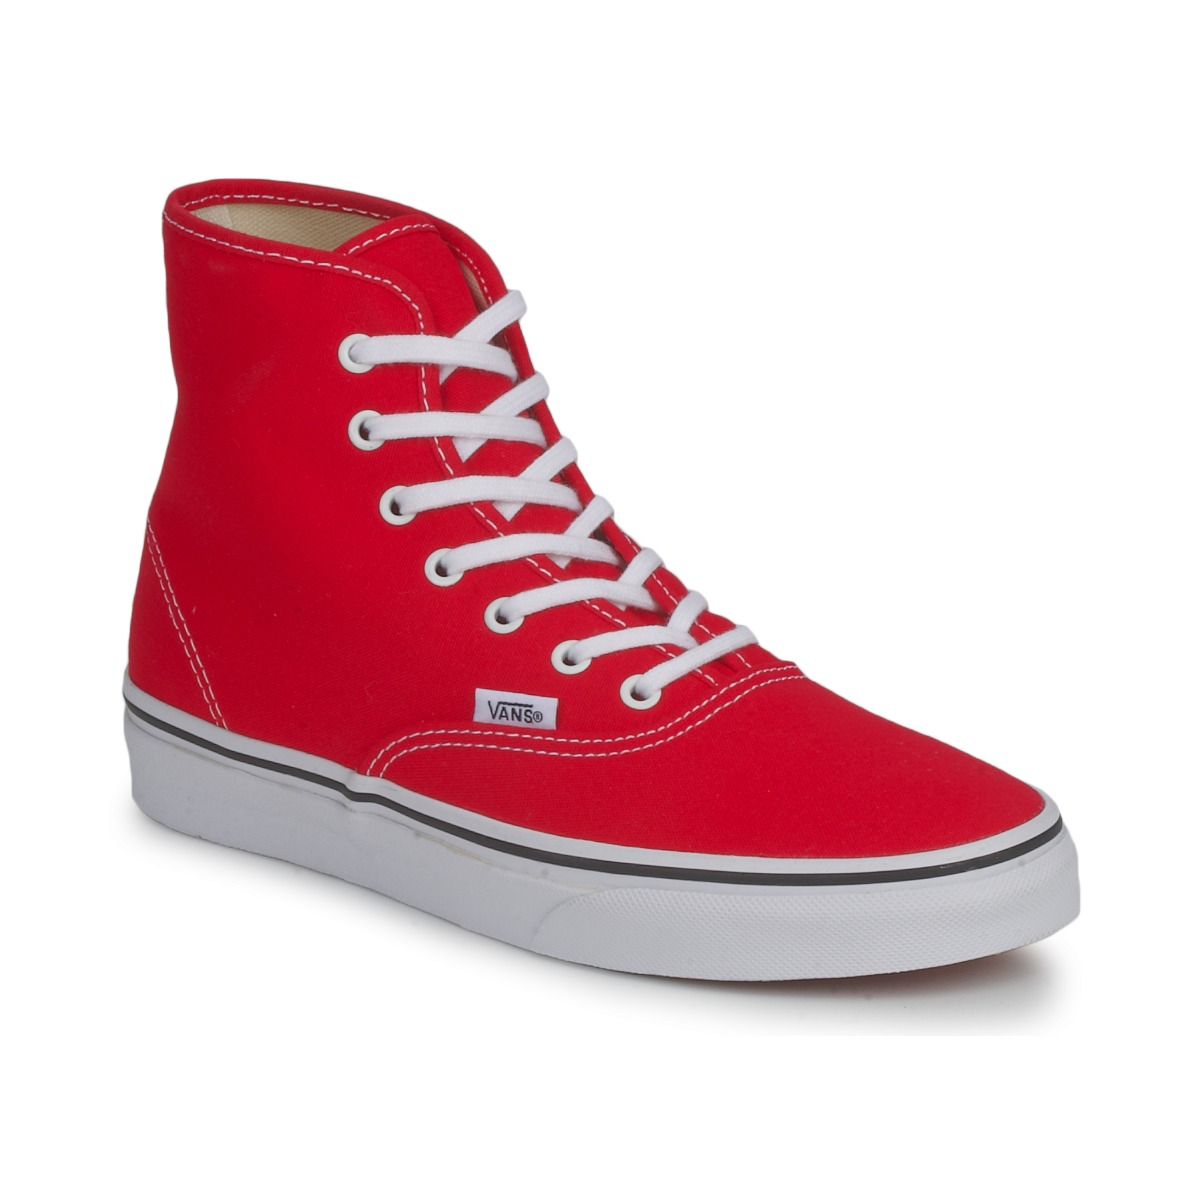 vans authentic hi rouge livraison gratuite avec chaussures basket montante. Black Bedroom Furniture Sets. Home Design Ideas